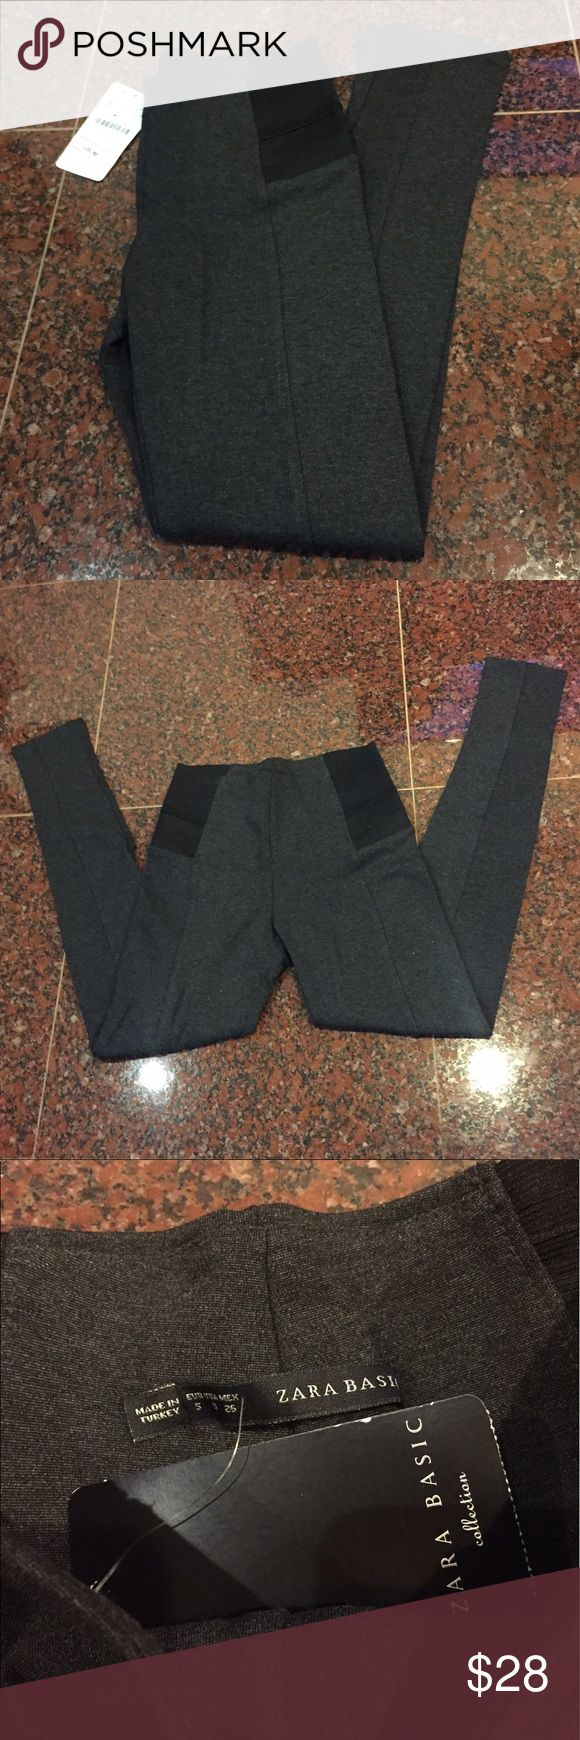 Zara Basic Charcoal Thick Leggings Charcoal colored stretch leggings from Zara Basic. Thick material with seam down leg for dressier look. Black elastic detail around waist. Size small. NWT. Zara Pants Leggings